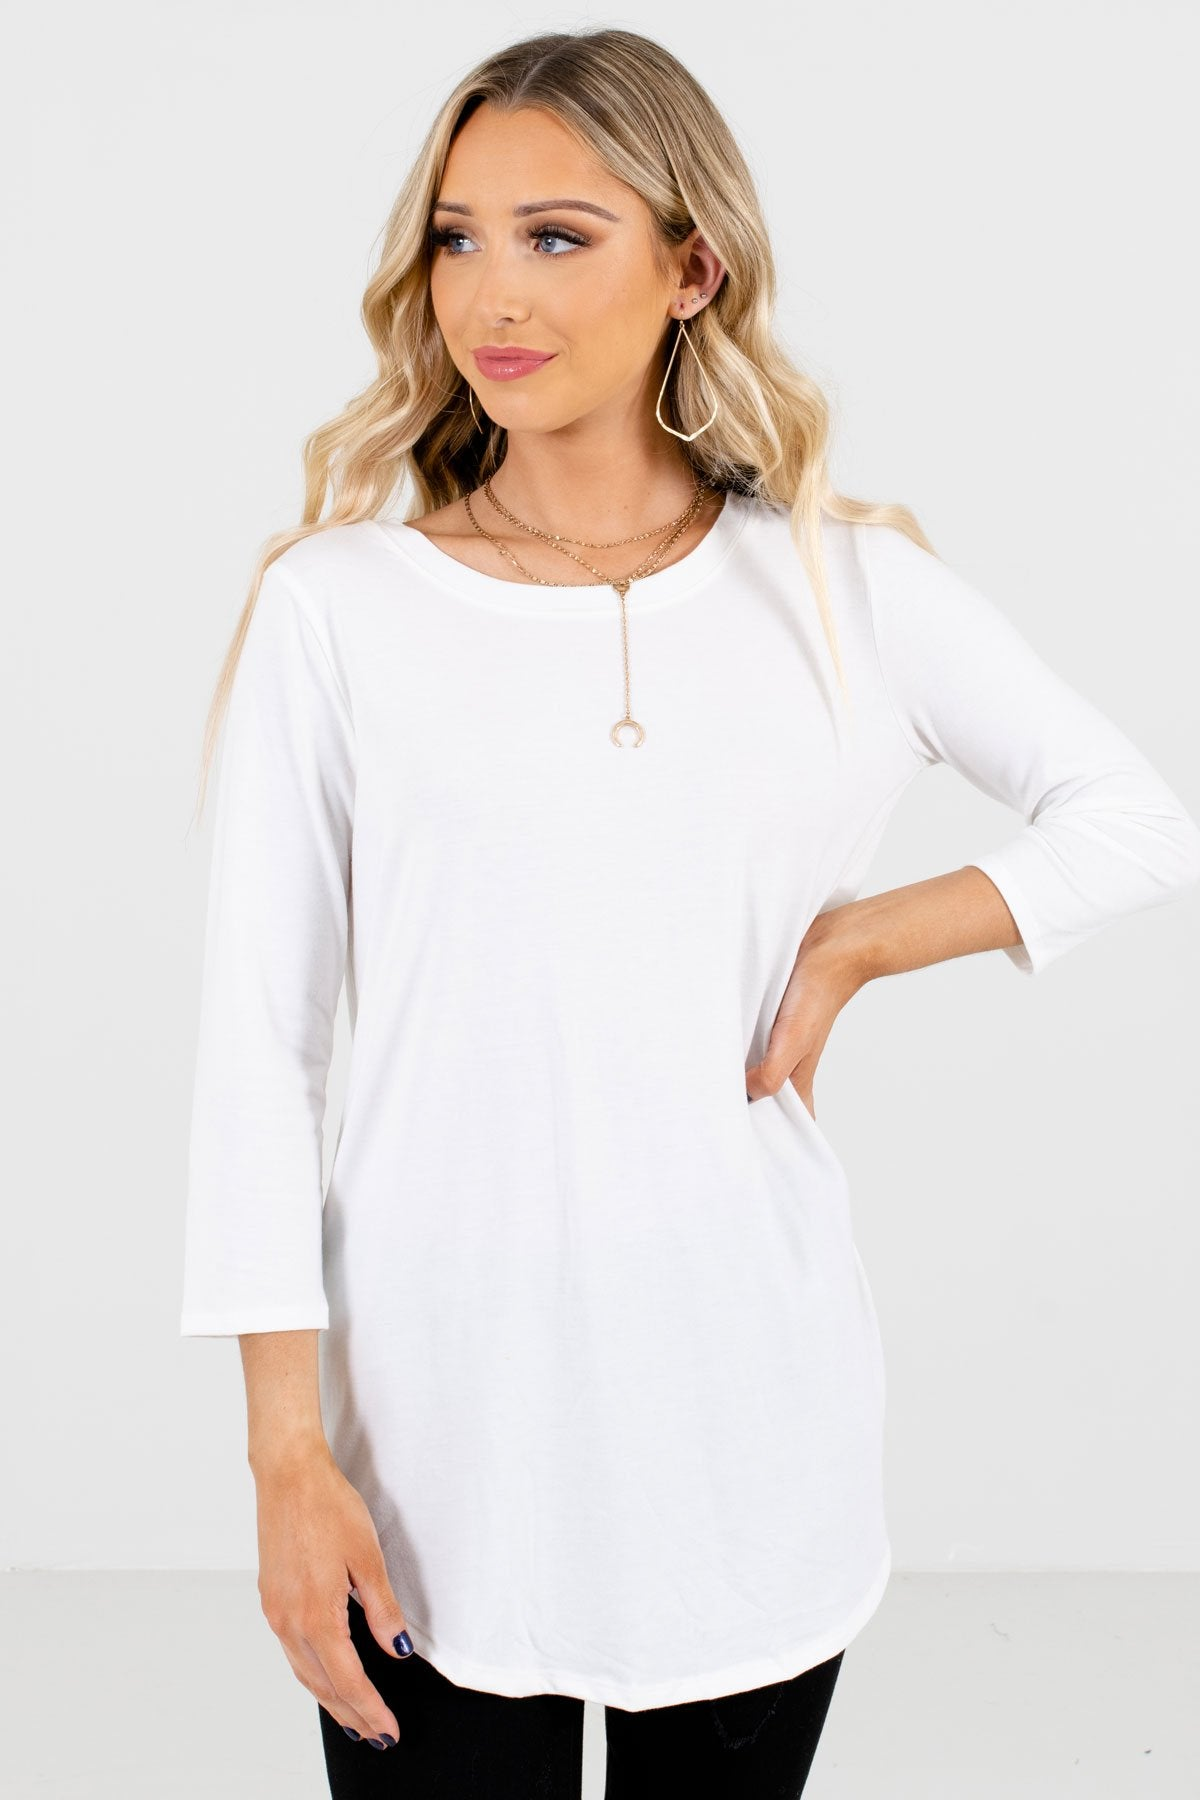 White ¾ Length Sleeve Boutique Tops for Women